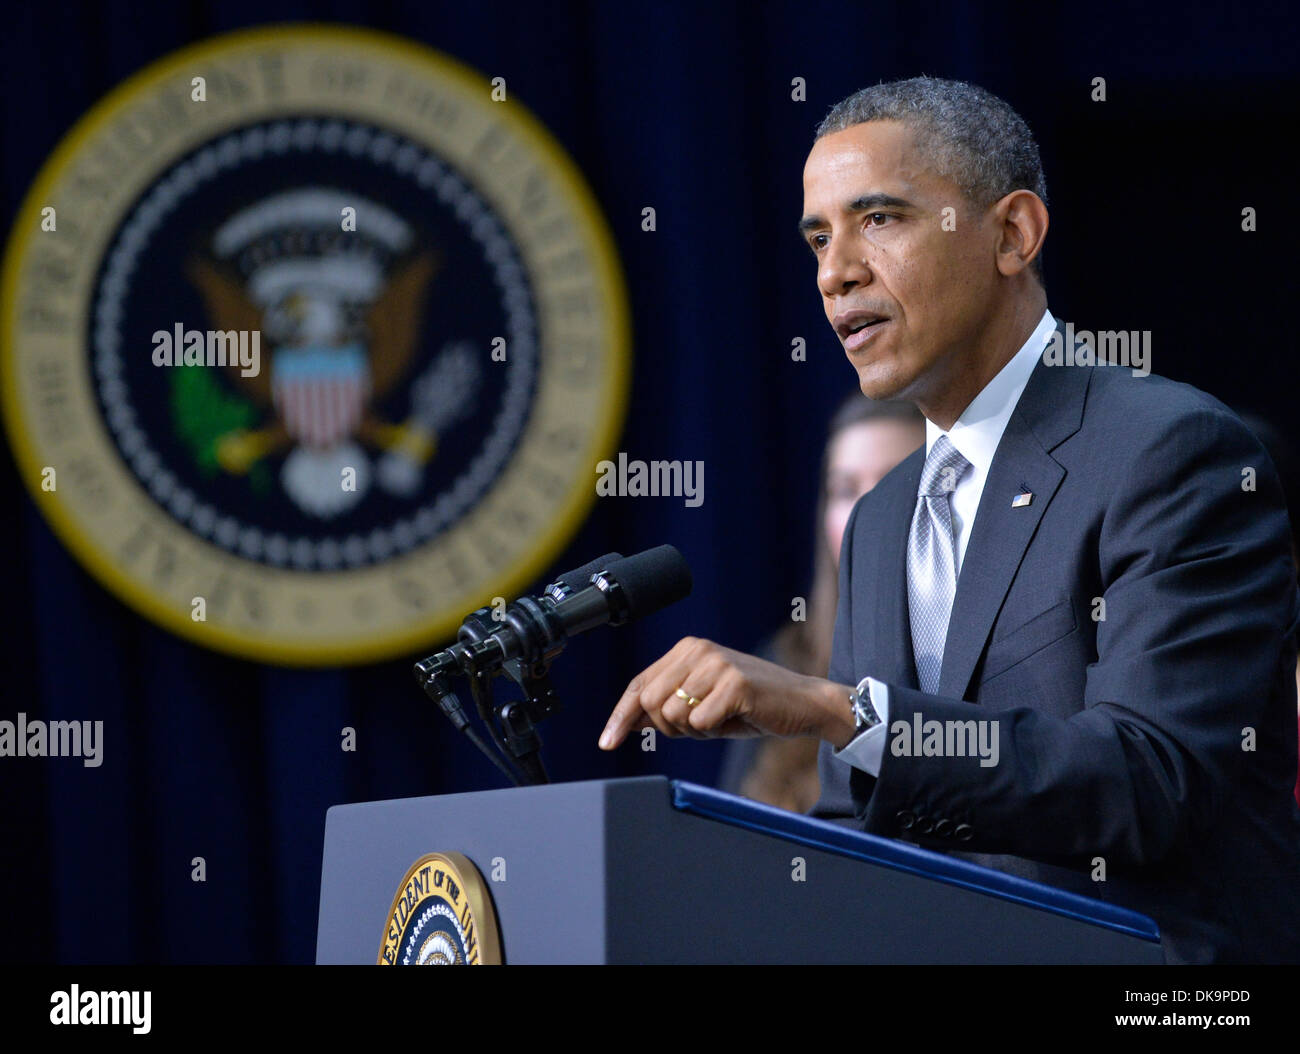 Washington DC, USA. 3rd December 2013. U.S. President Barack Obama speaks on the affordable care act in the South Court Auditorium of the White House in Washington DC Dec. 3, 2013. Barack Obama on Tuesday launched a three-week coordinated campaign with Democrats at Capitol Hill and outside allies to reboot his signature healthcare overhaul, following two months of intense media coverage of the federal healthcare website failures. (Xinhua/Zhang Jun/Alamy Live News) - Stock Image